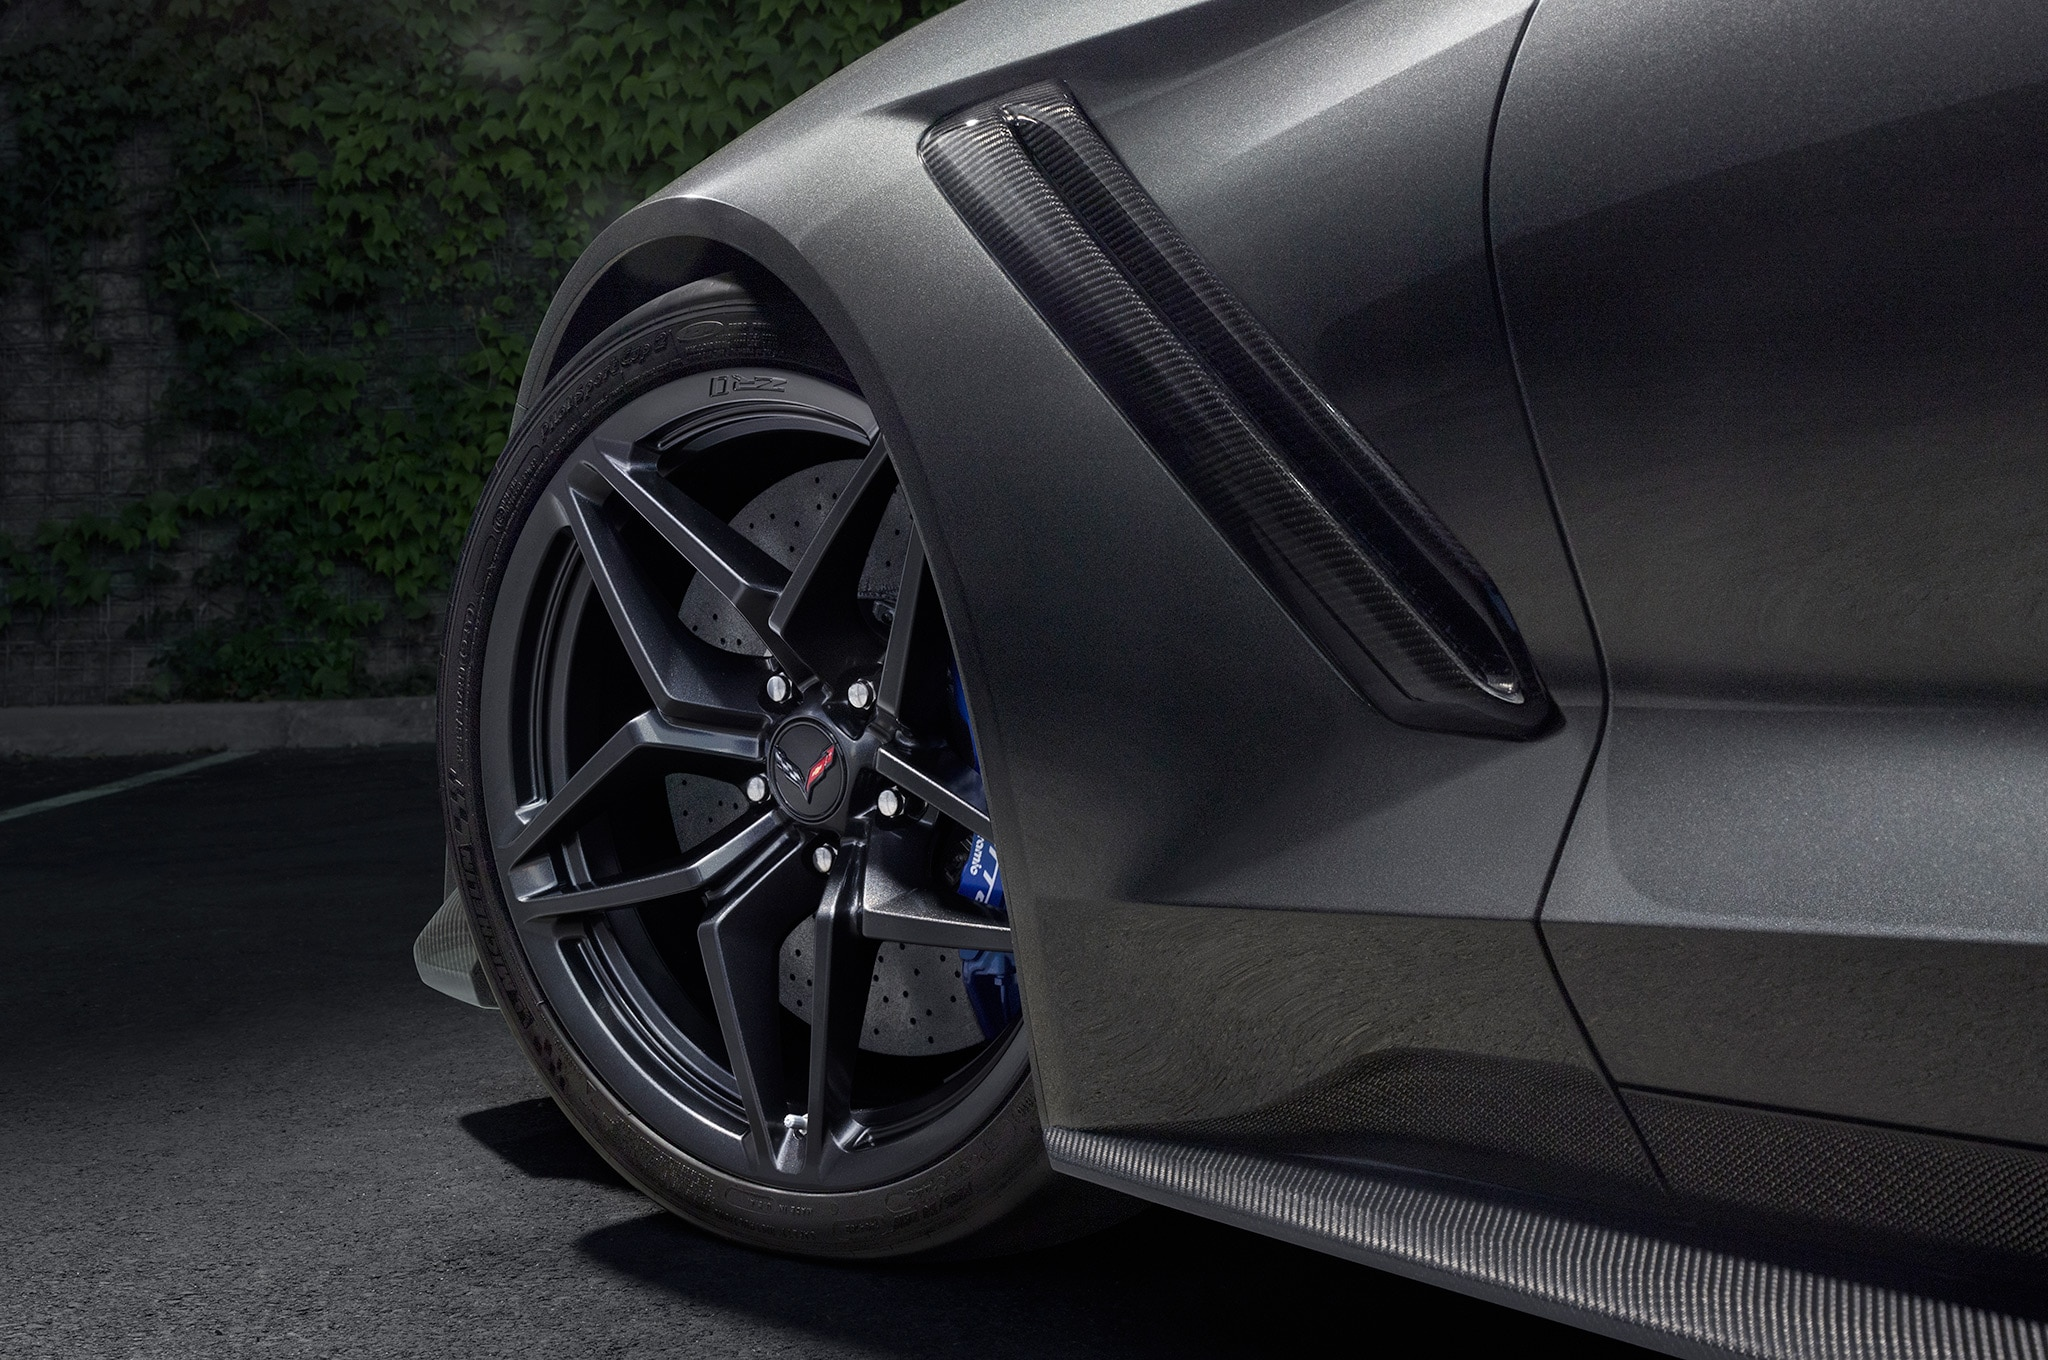 755-Horsepower 2019 Chevy Corvette ZR1 is the Fastest, Most Powerful Vette Ever | Automobile ...